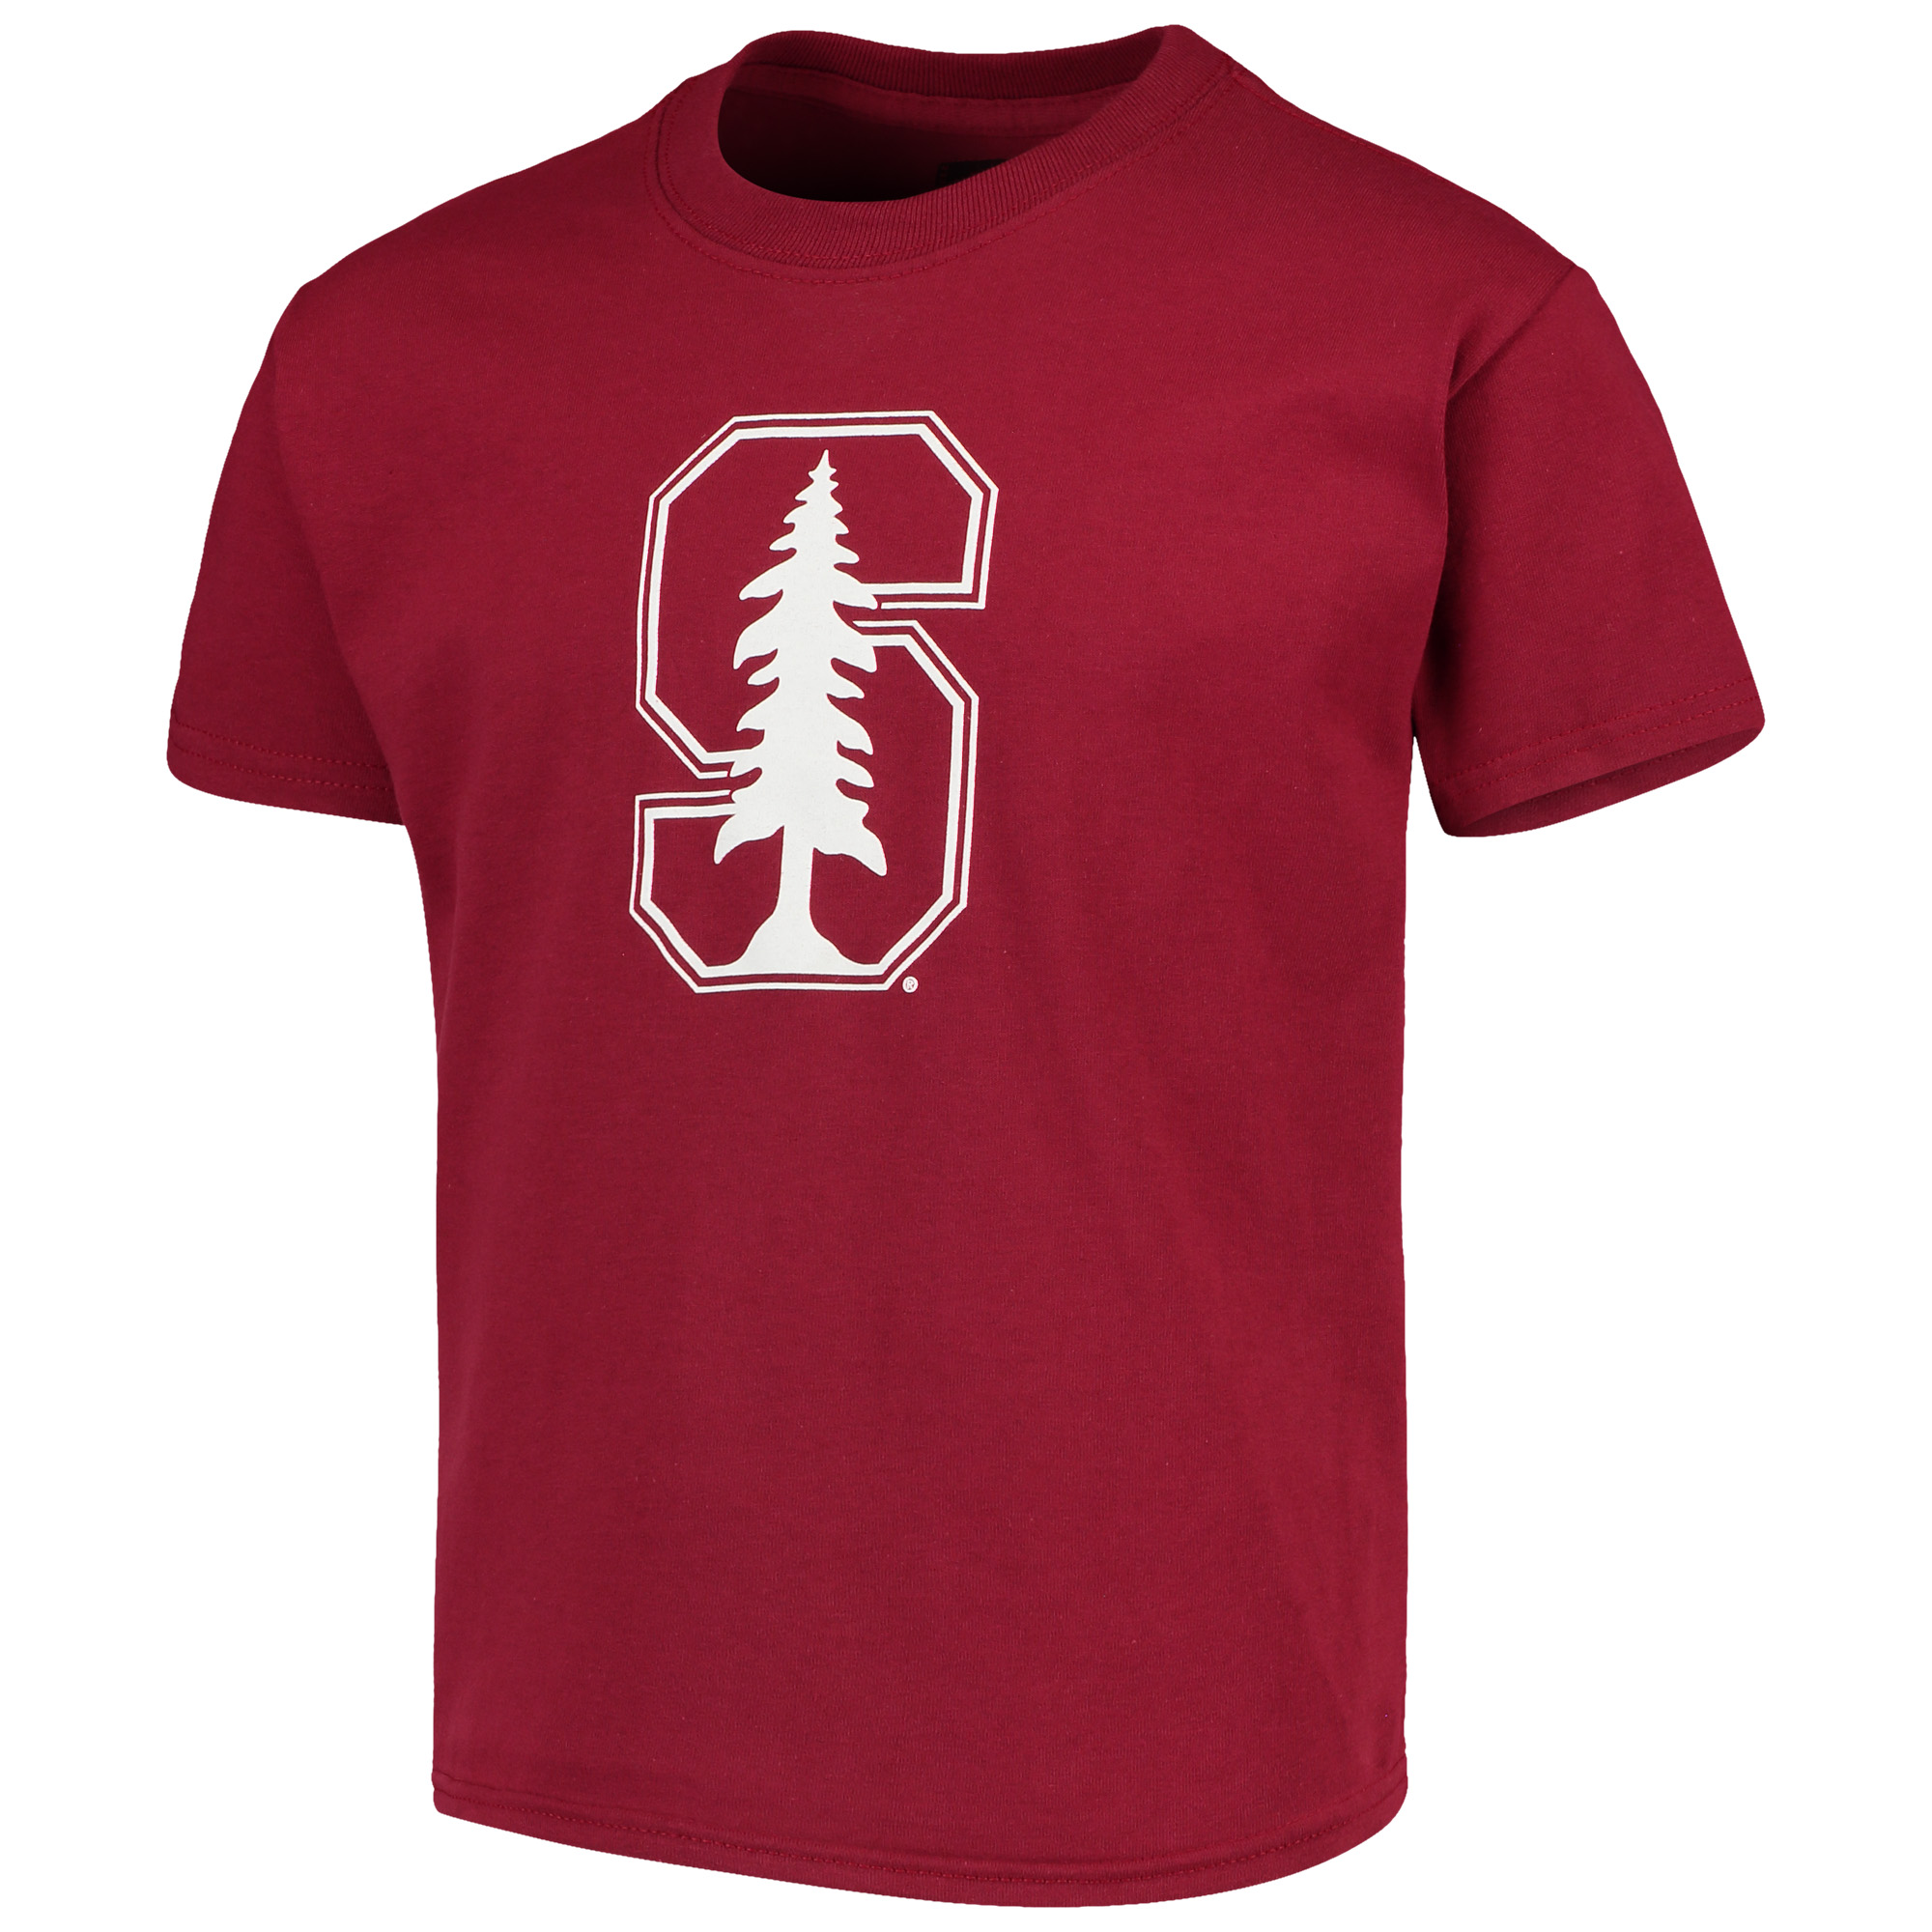 Stanford Cardinal Russell Youth Oversized Graphic Crew Neck T-Shirt - Cardinal